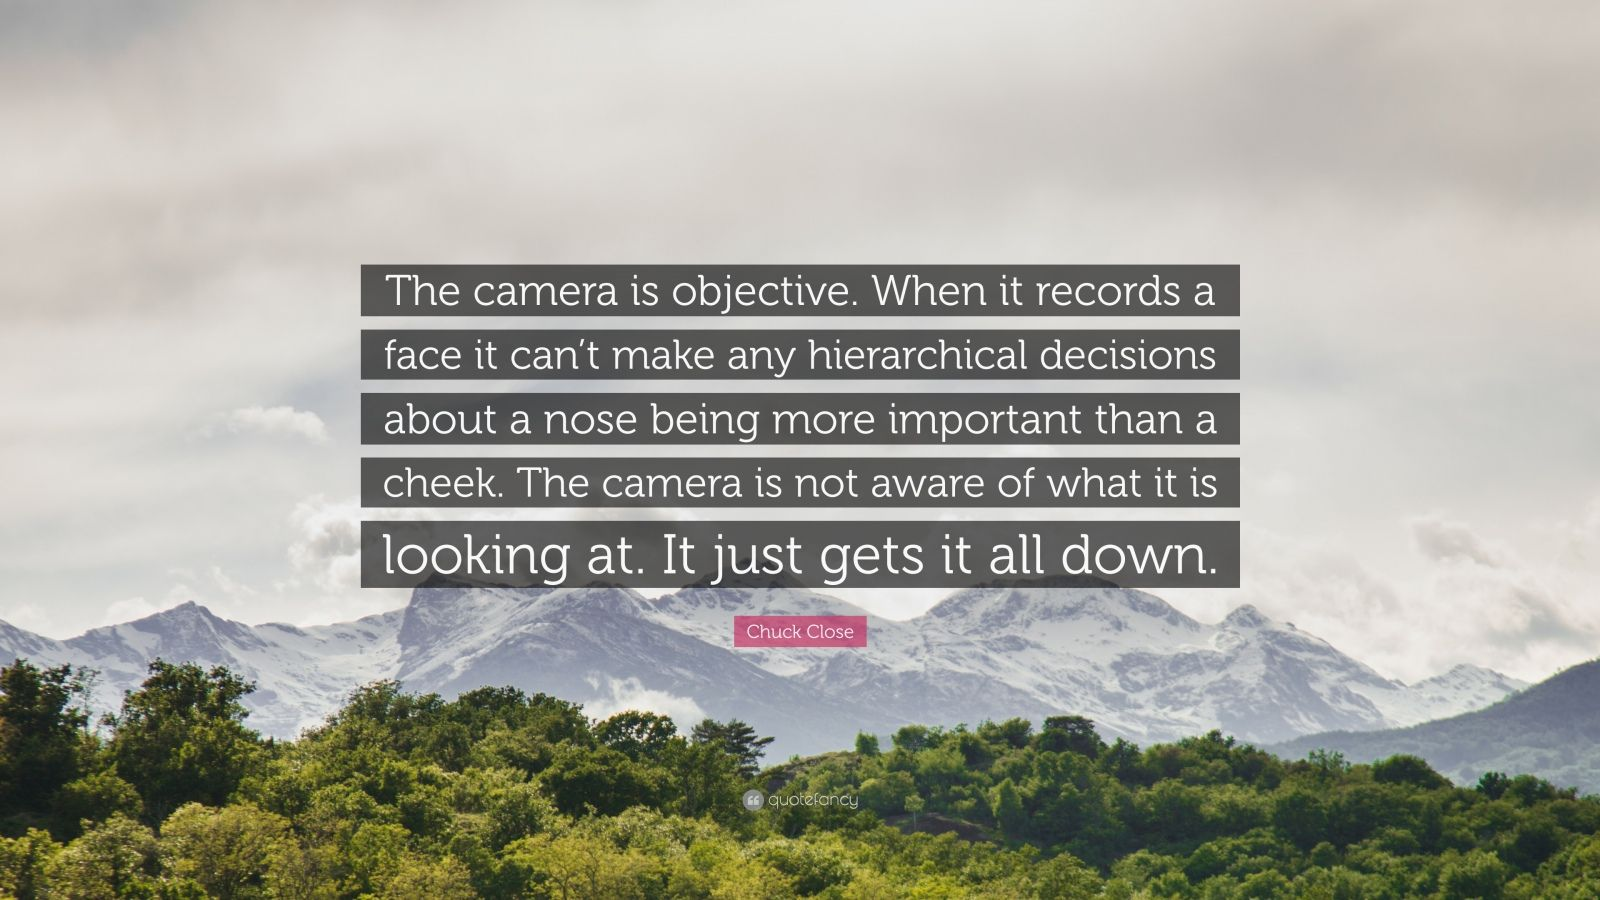 """Chuck Close Quote: """"The camera is objective. When it records a face it can't make any hierarchical decisions about a nose being more important than a cheek. The camera is not aware of what it is looking at. It just gets it all down."""""""